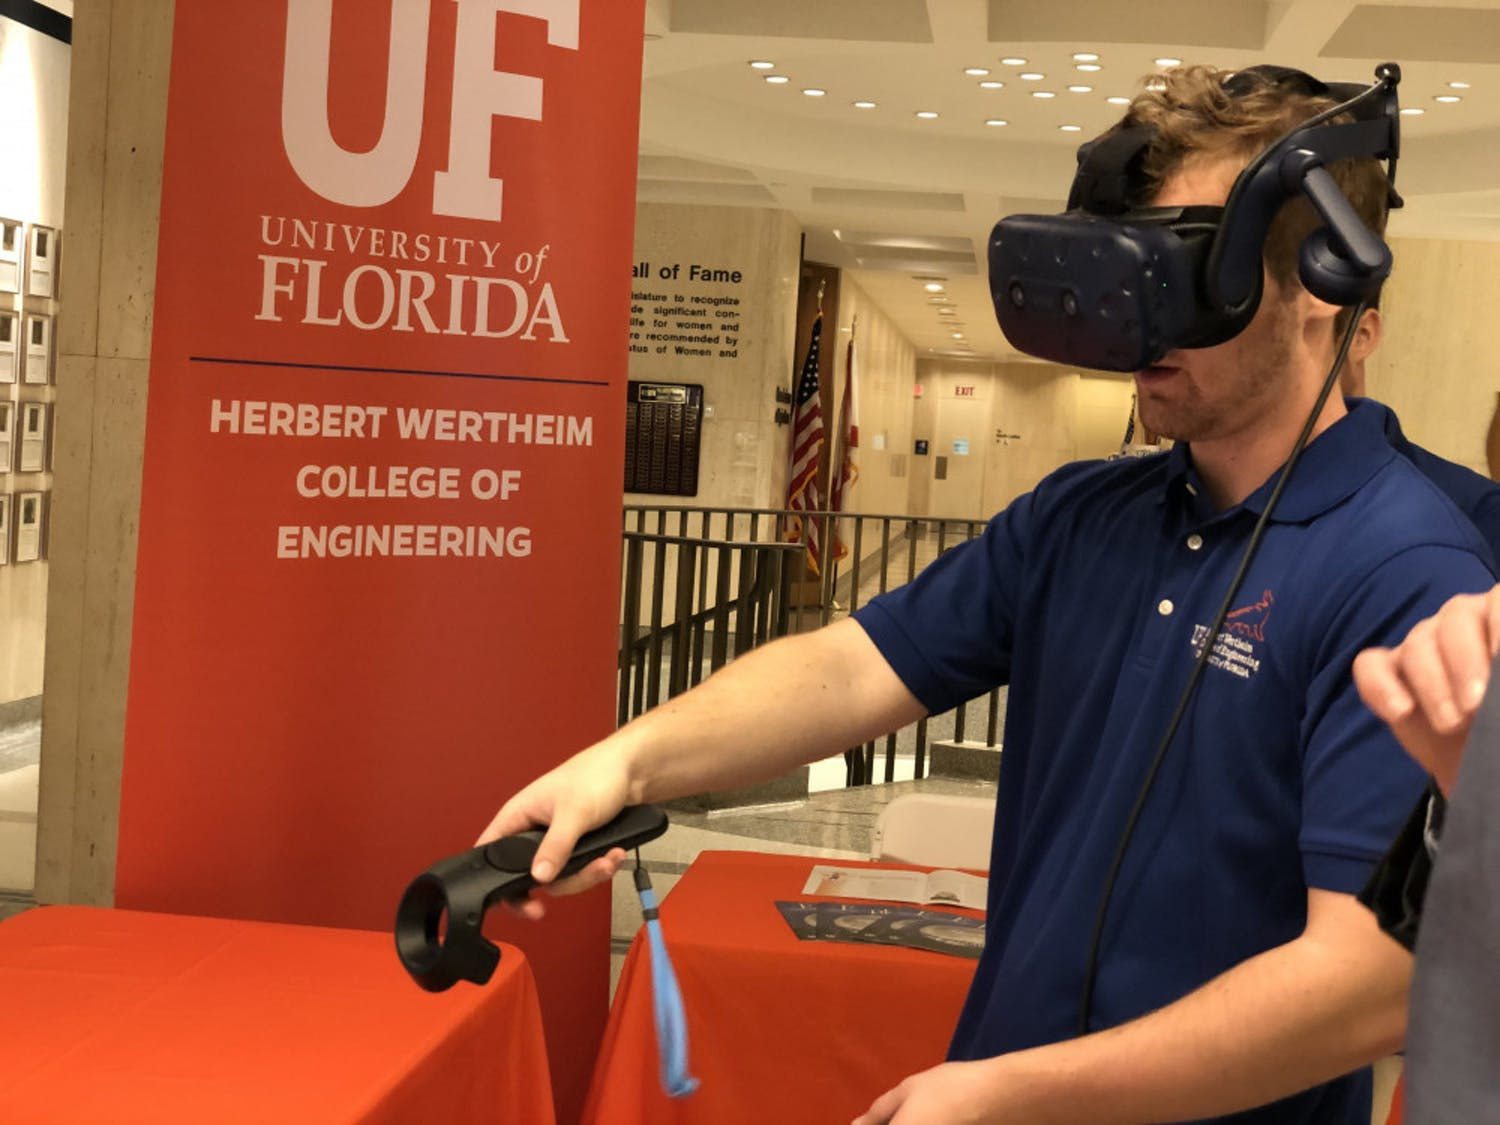 Adam Lizek, a 20-year-old UF computer science junior, uses virtual reality as part of the College of Engineering's Gator Day display. The college is researching virtual reality applications in education to create smart classrooms, Lizek said.